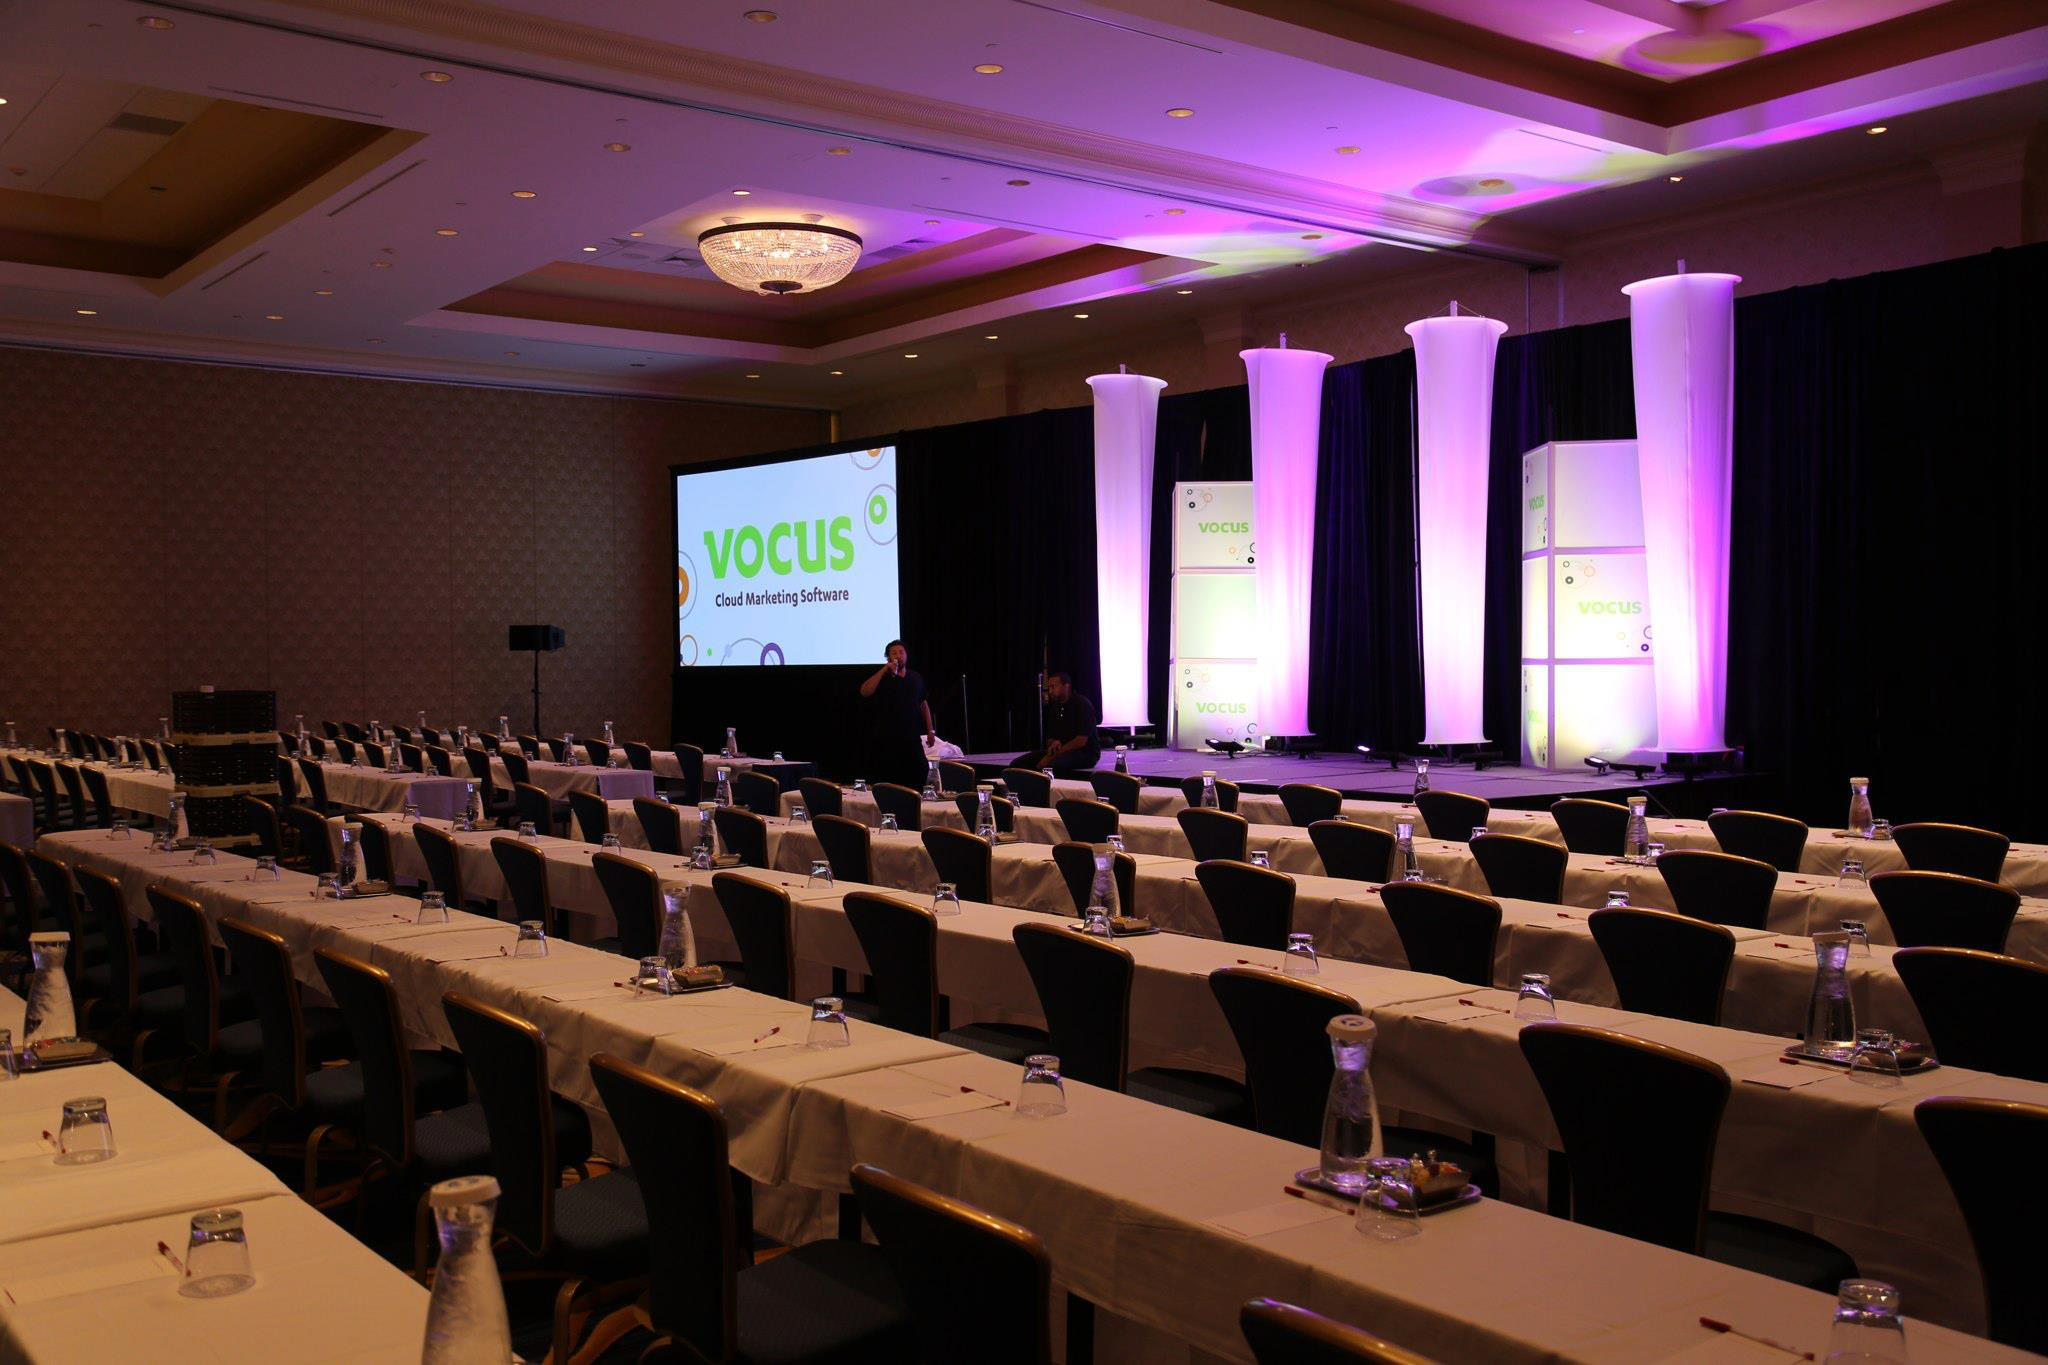 emergent themes from the 2012 vocus user conference